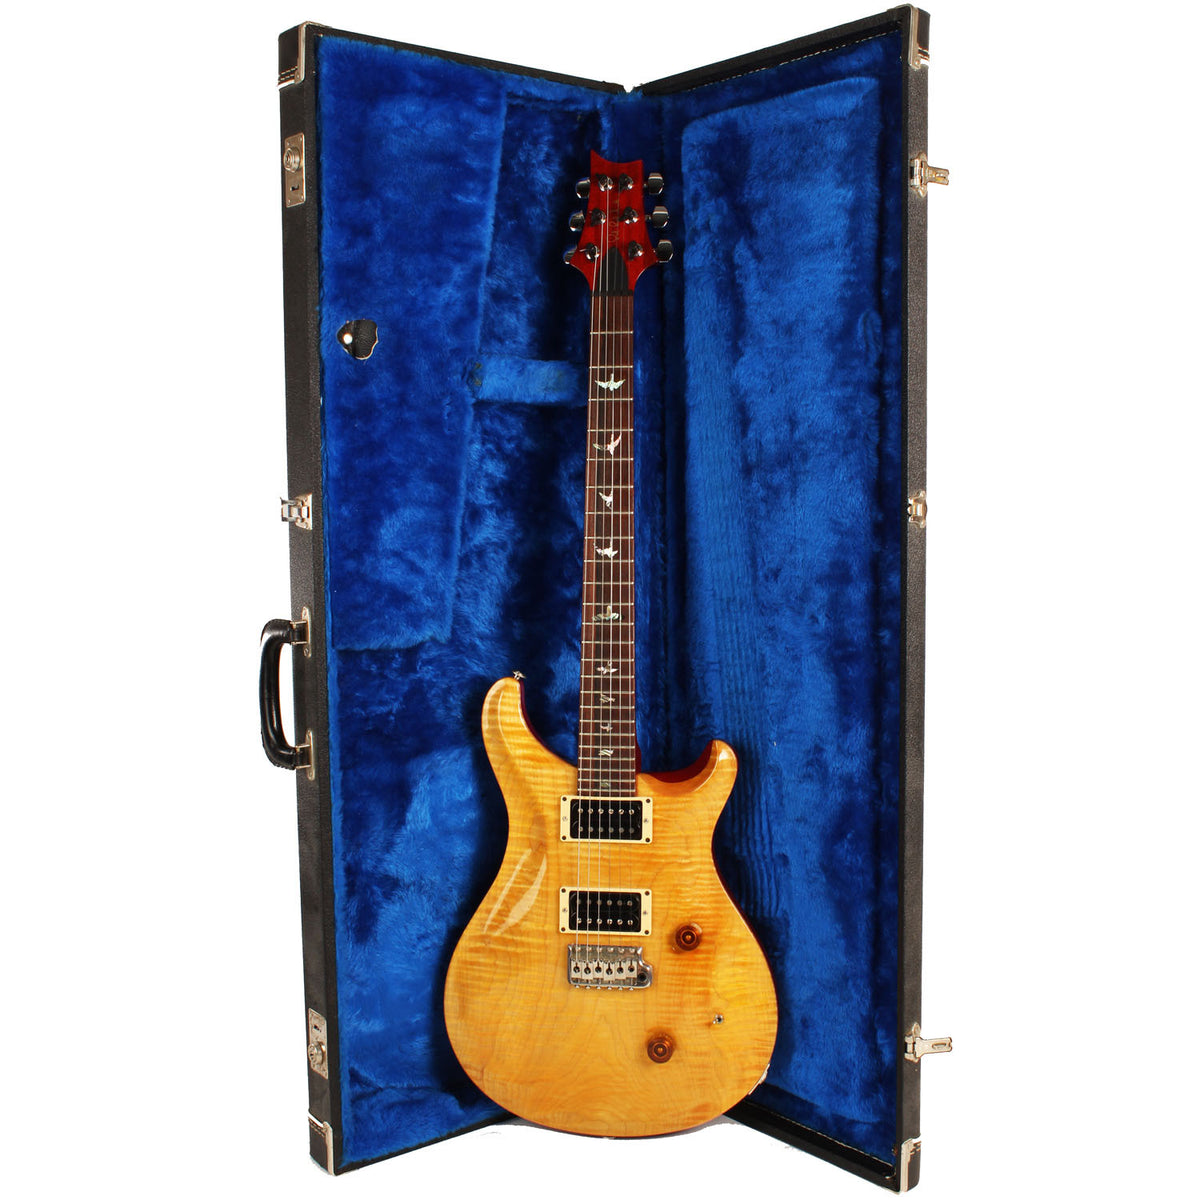 1985 PRS Custom - Garrett Park Guitars  - 9